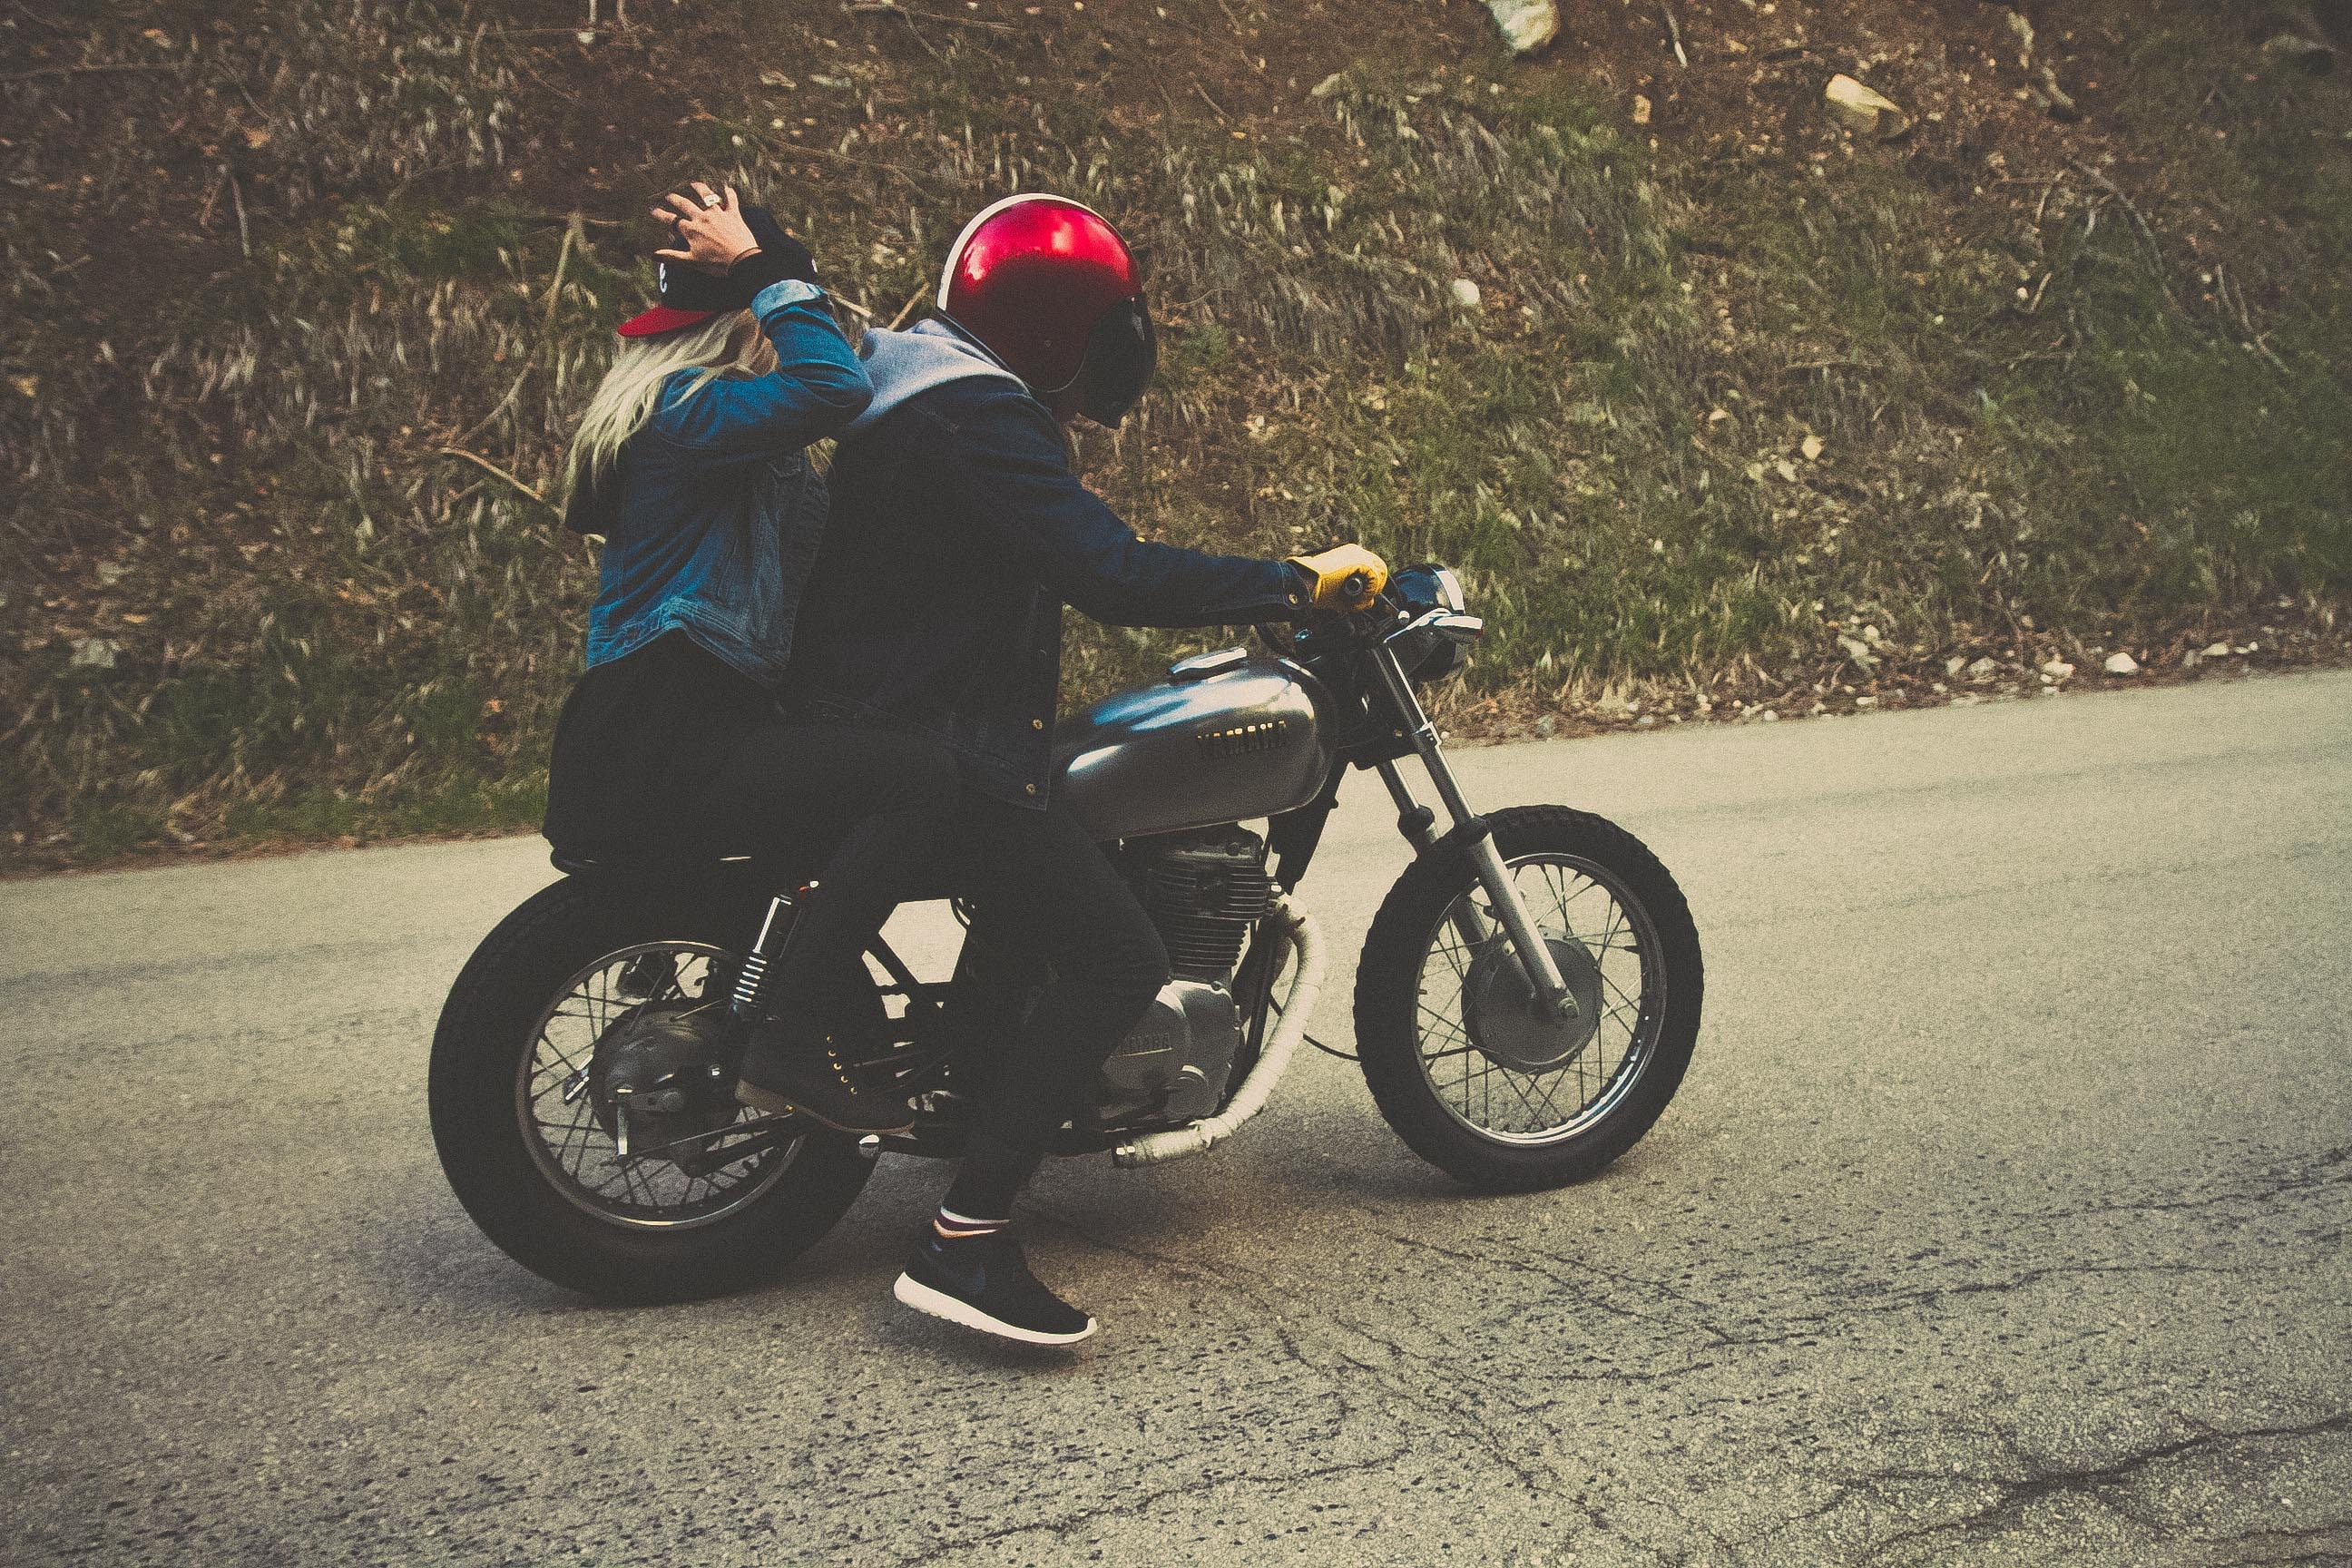 Two people on a silver motorcycle on asphalt